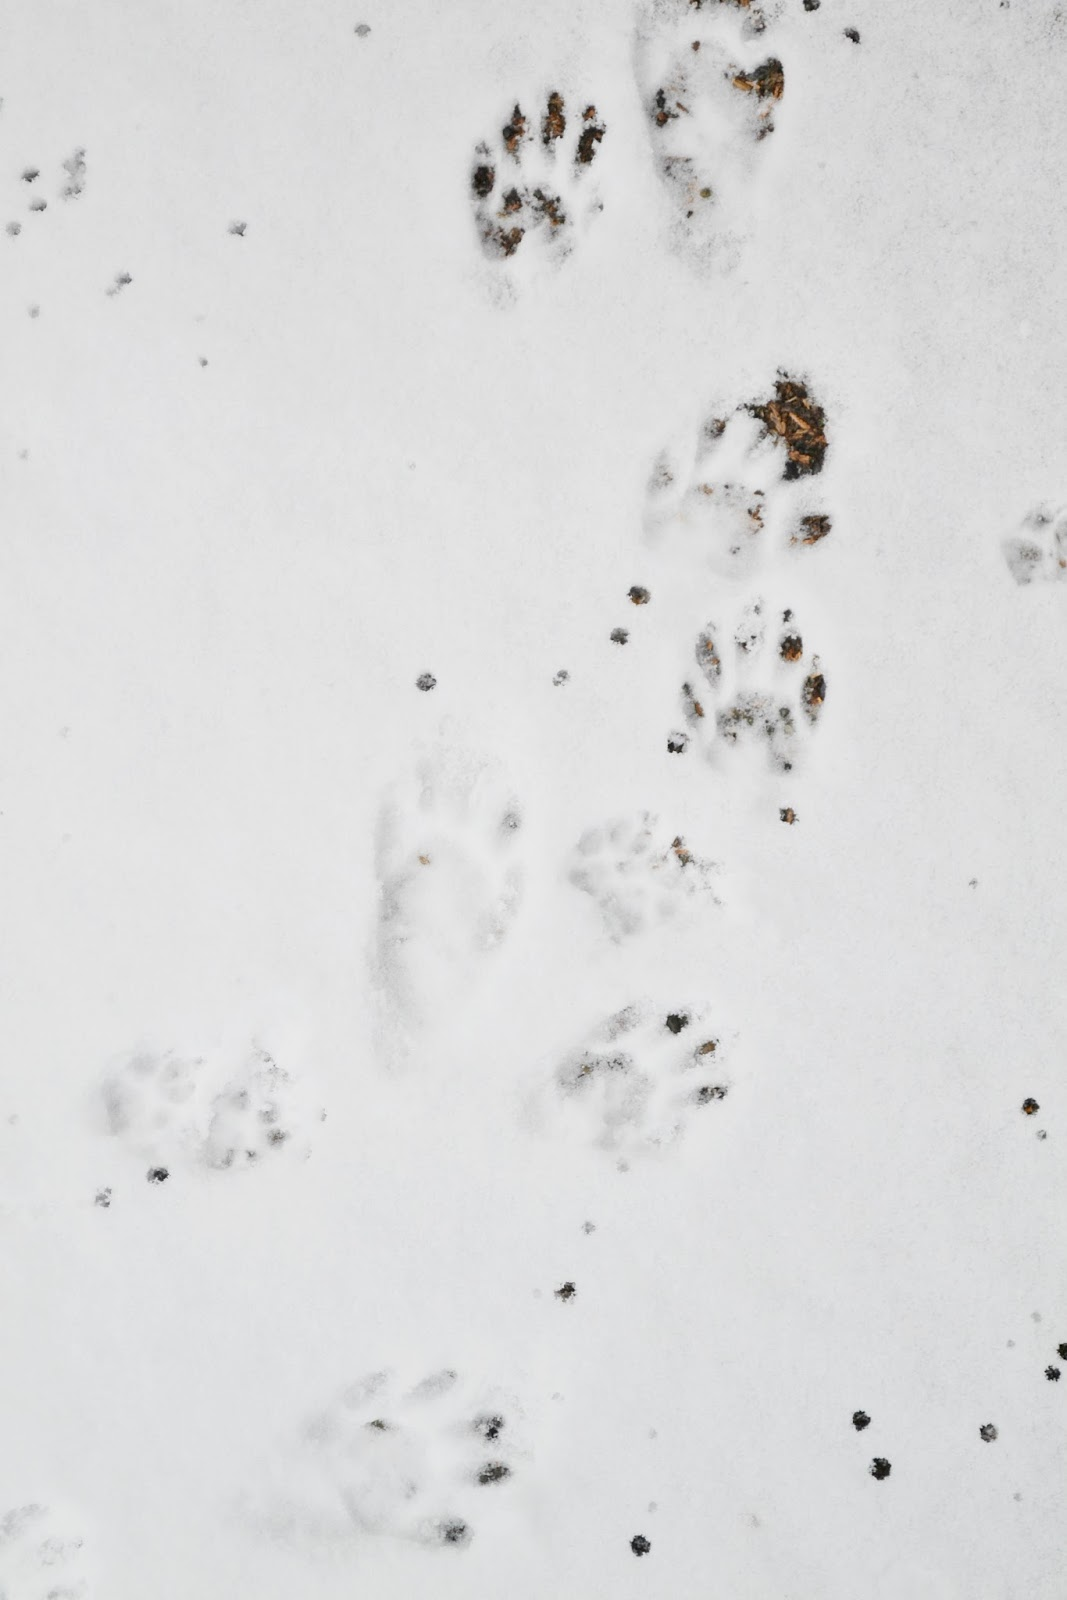 raccoons, paws, tracks, snow, nature